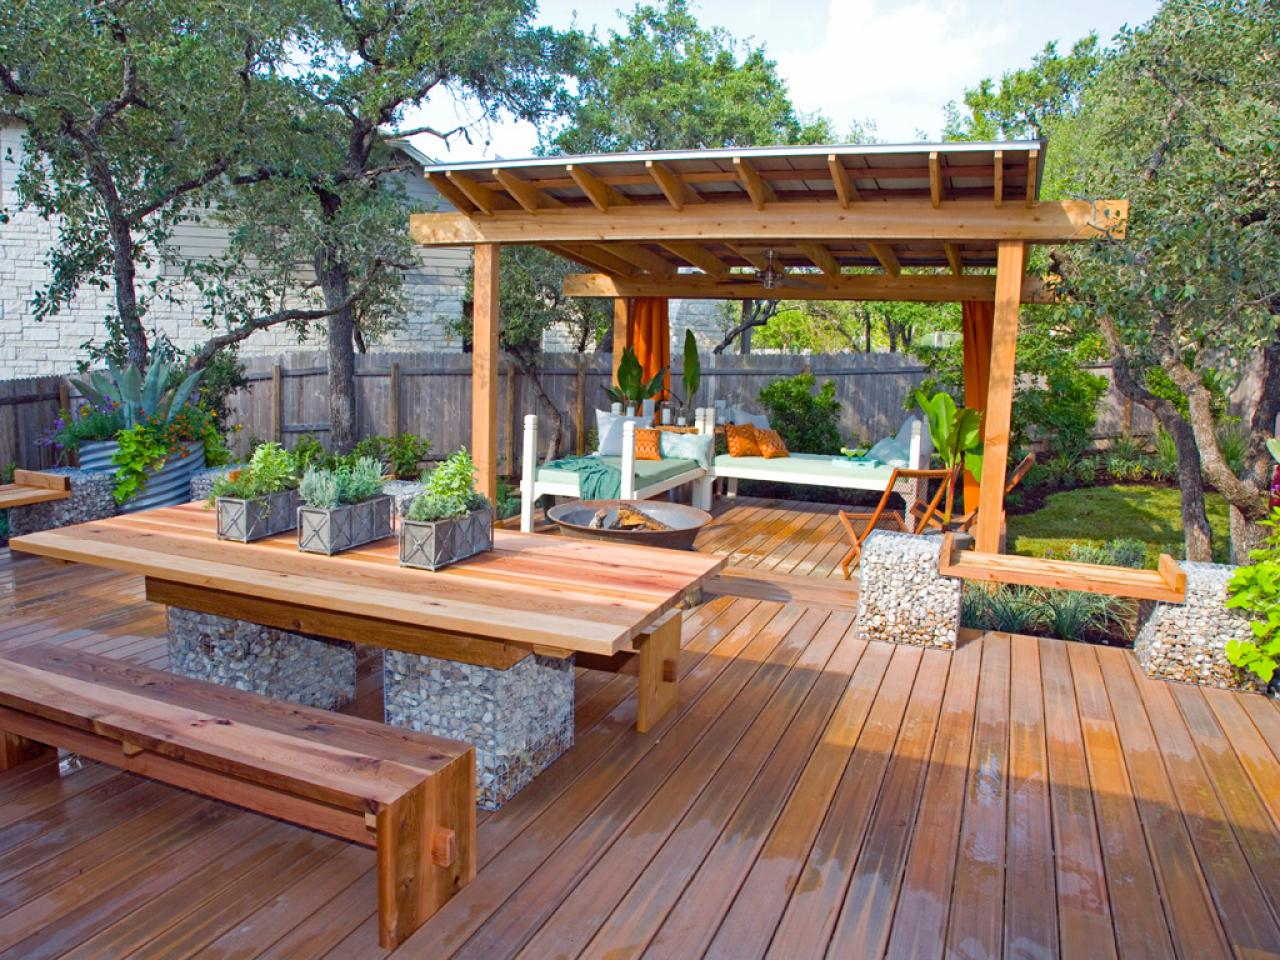 Backyard Deck And Patio Ideas Awesome Best Wood Deck Designs Ideas with regard to Backyard Wood Patio Ideas